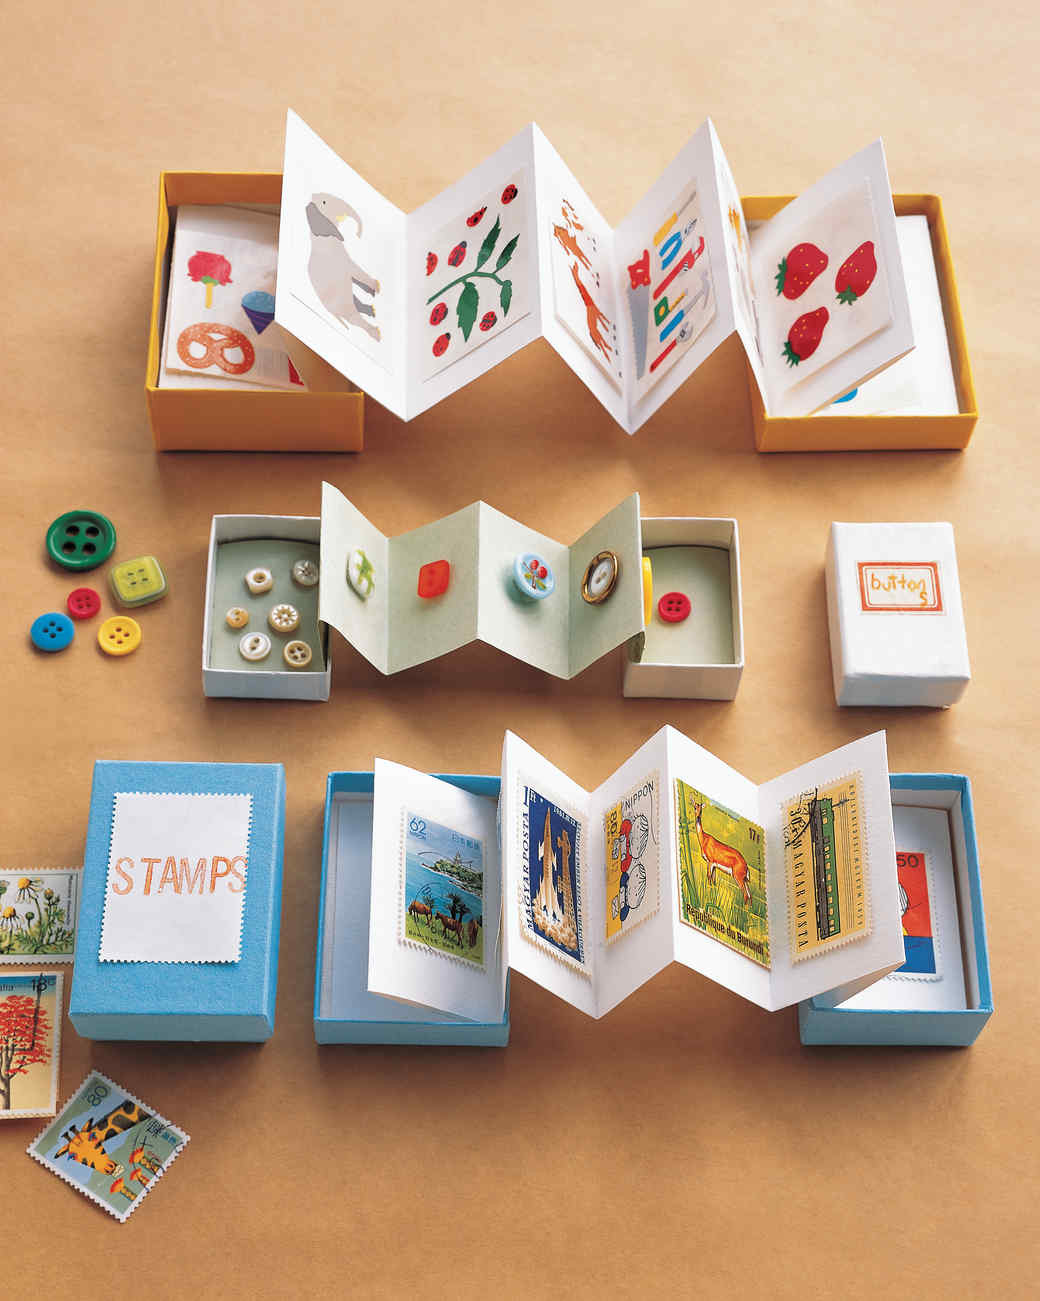 Best ideas about Kids Craft Projects . Save or Pin Summer Scrapbooking Projects for Kids Now.